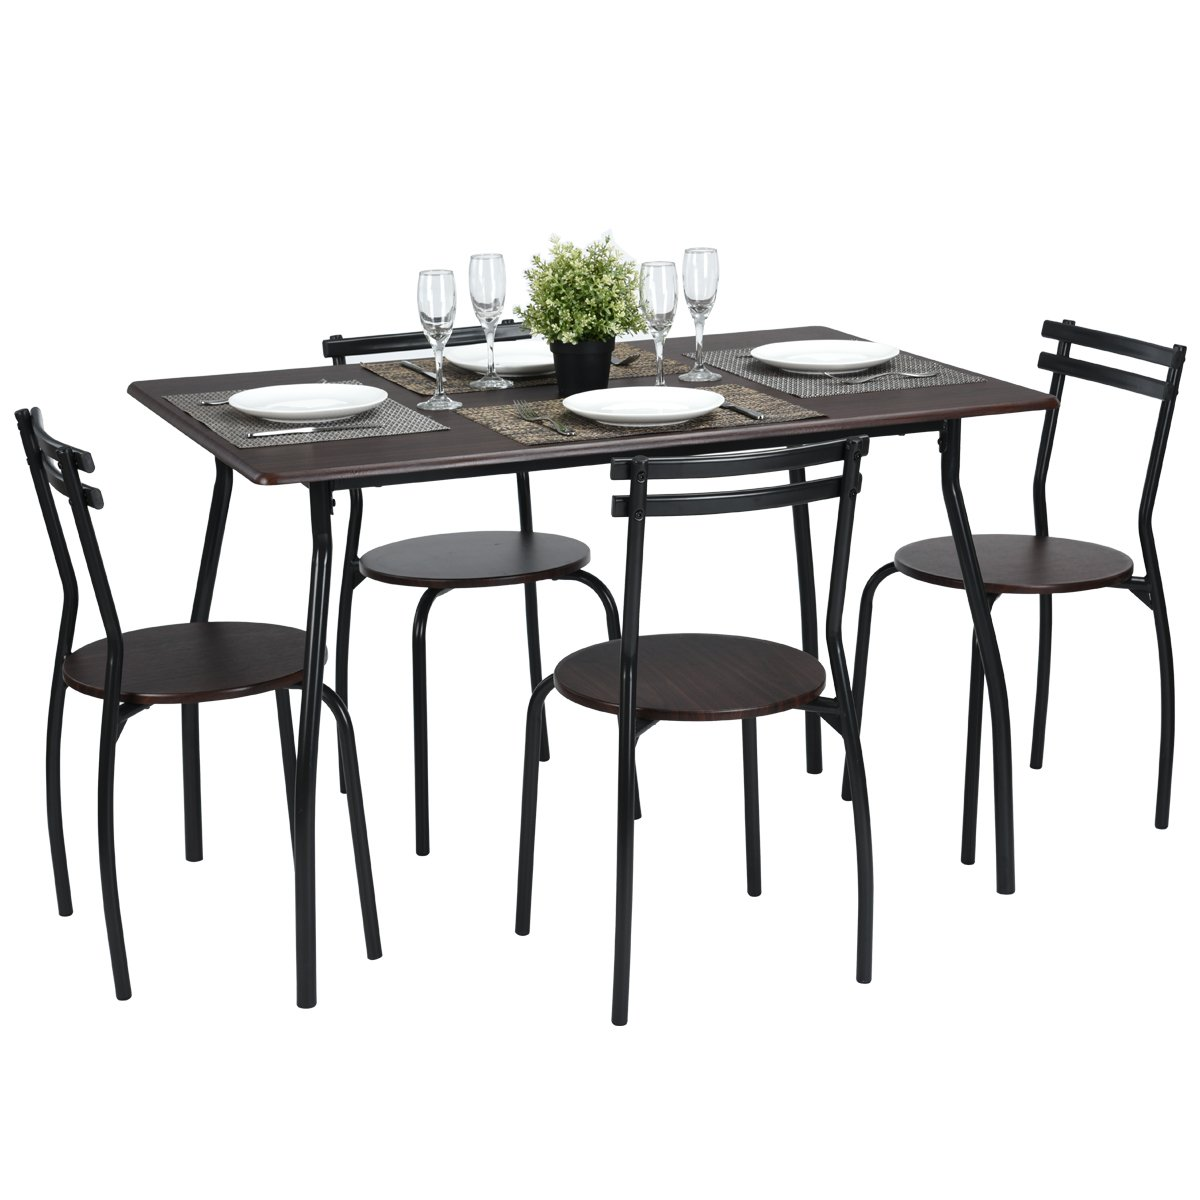 5pcs Dining Table Set Kitchen Furniture Kitchen Table Rectangle Dining Table with 4 Round Dining Chair Dinning Set FurnitureR